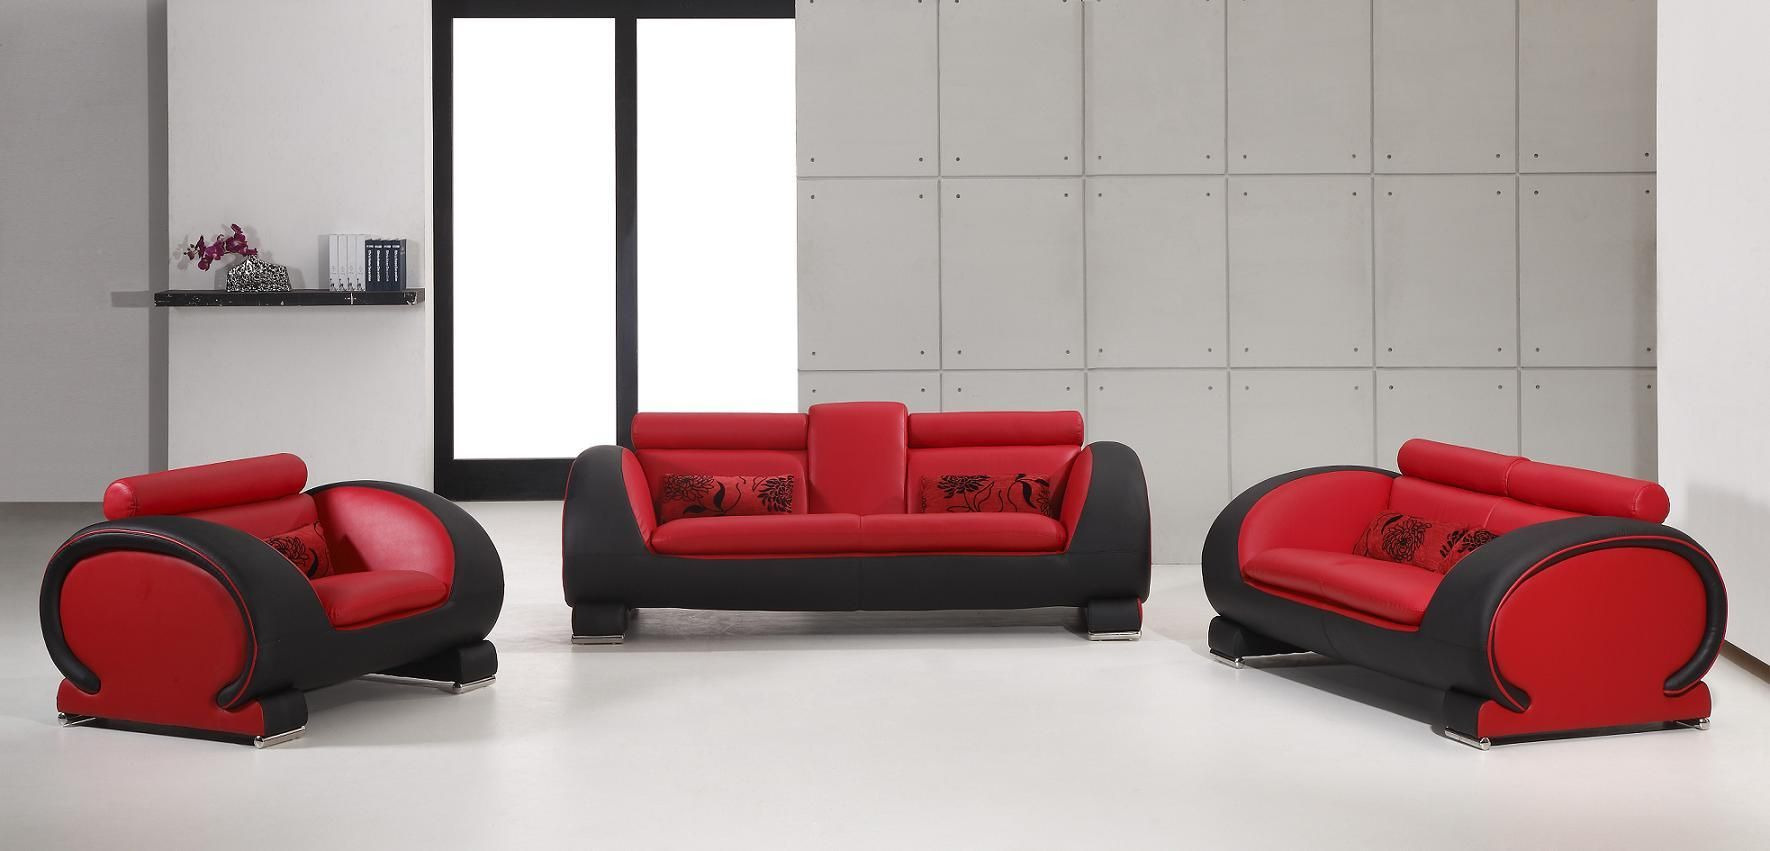 Furniture astonishing living room couch sets design for Red living room furniture